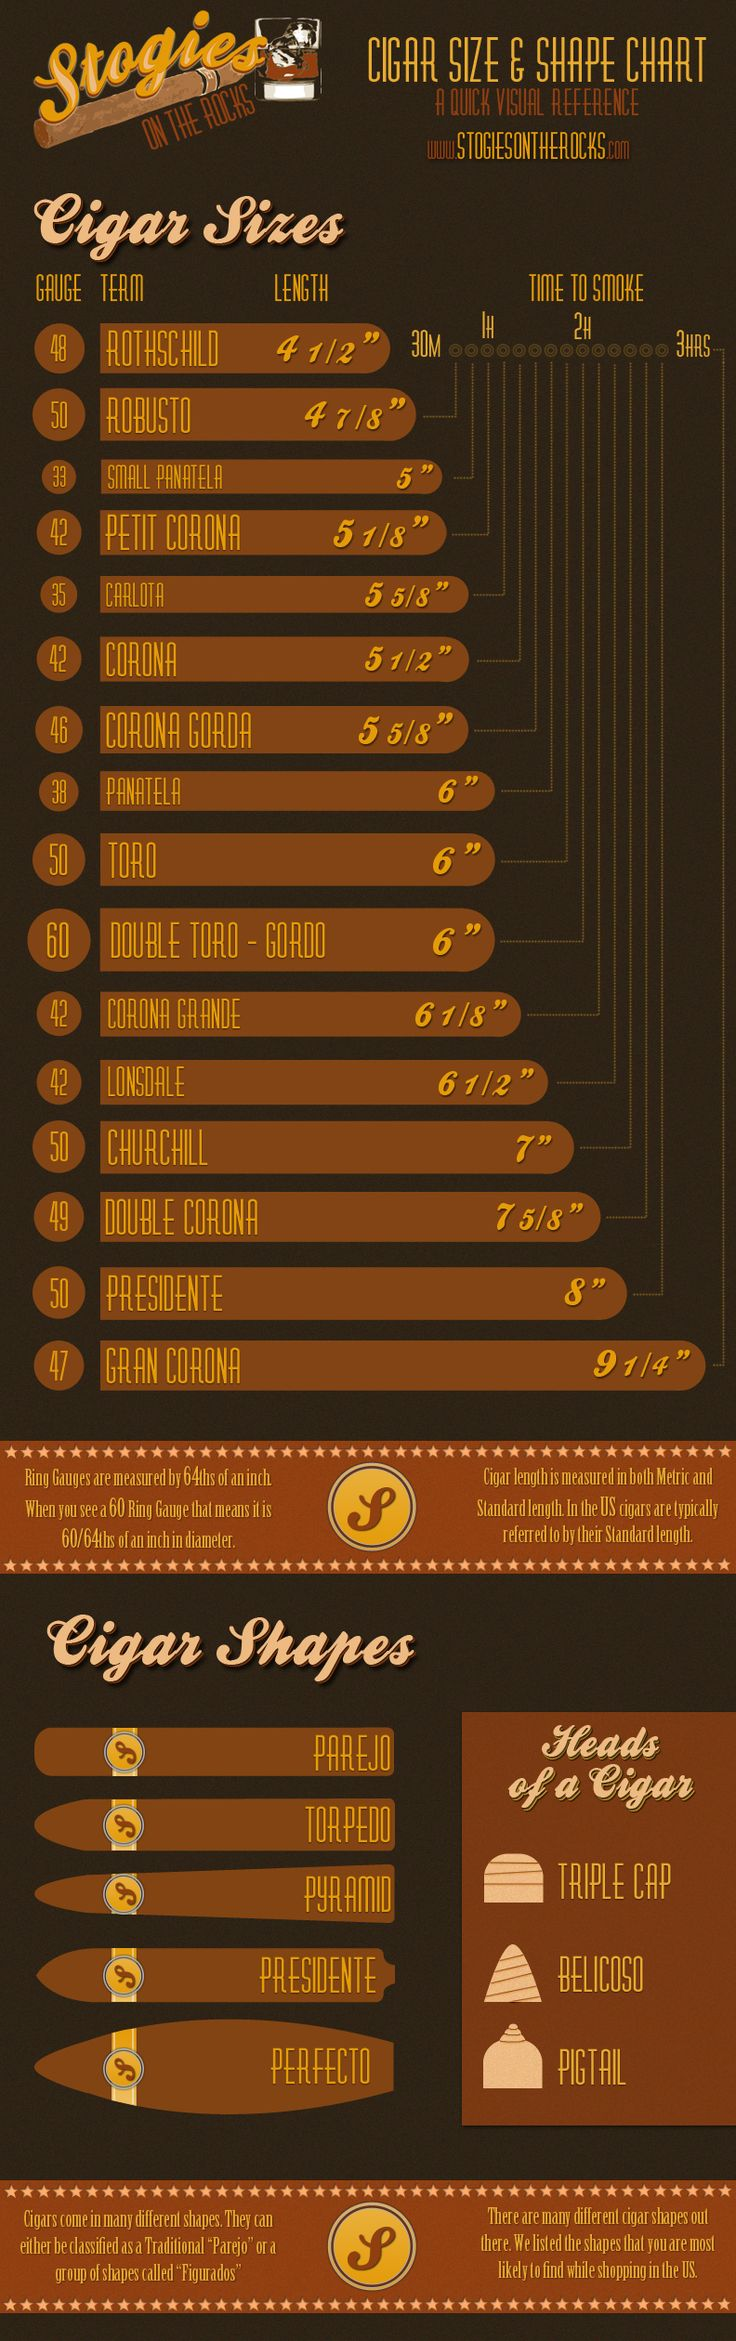 Cigar Size & Shapes Chart, a quick visual reference to help cut through the clutter of cigar terminology.